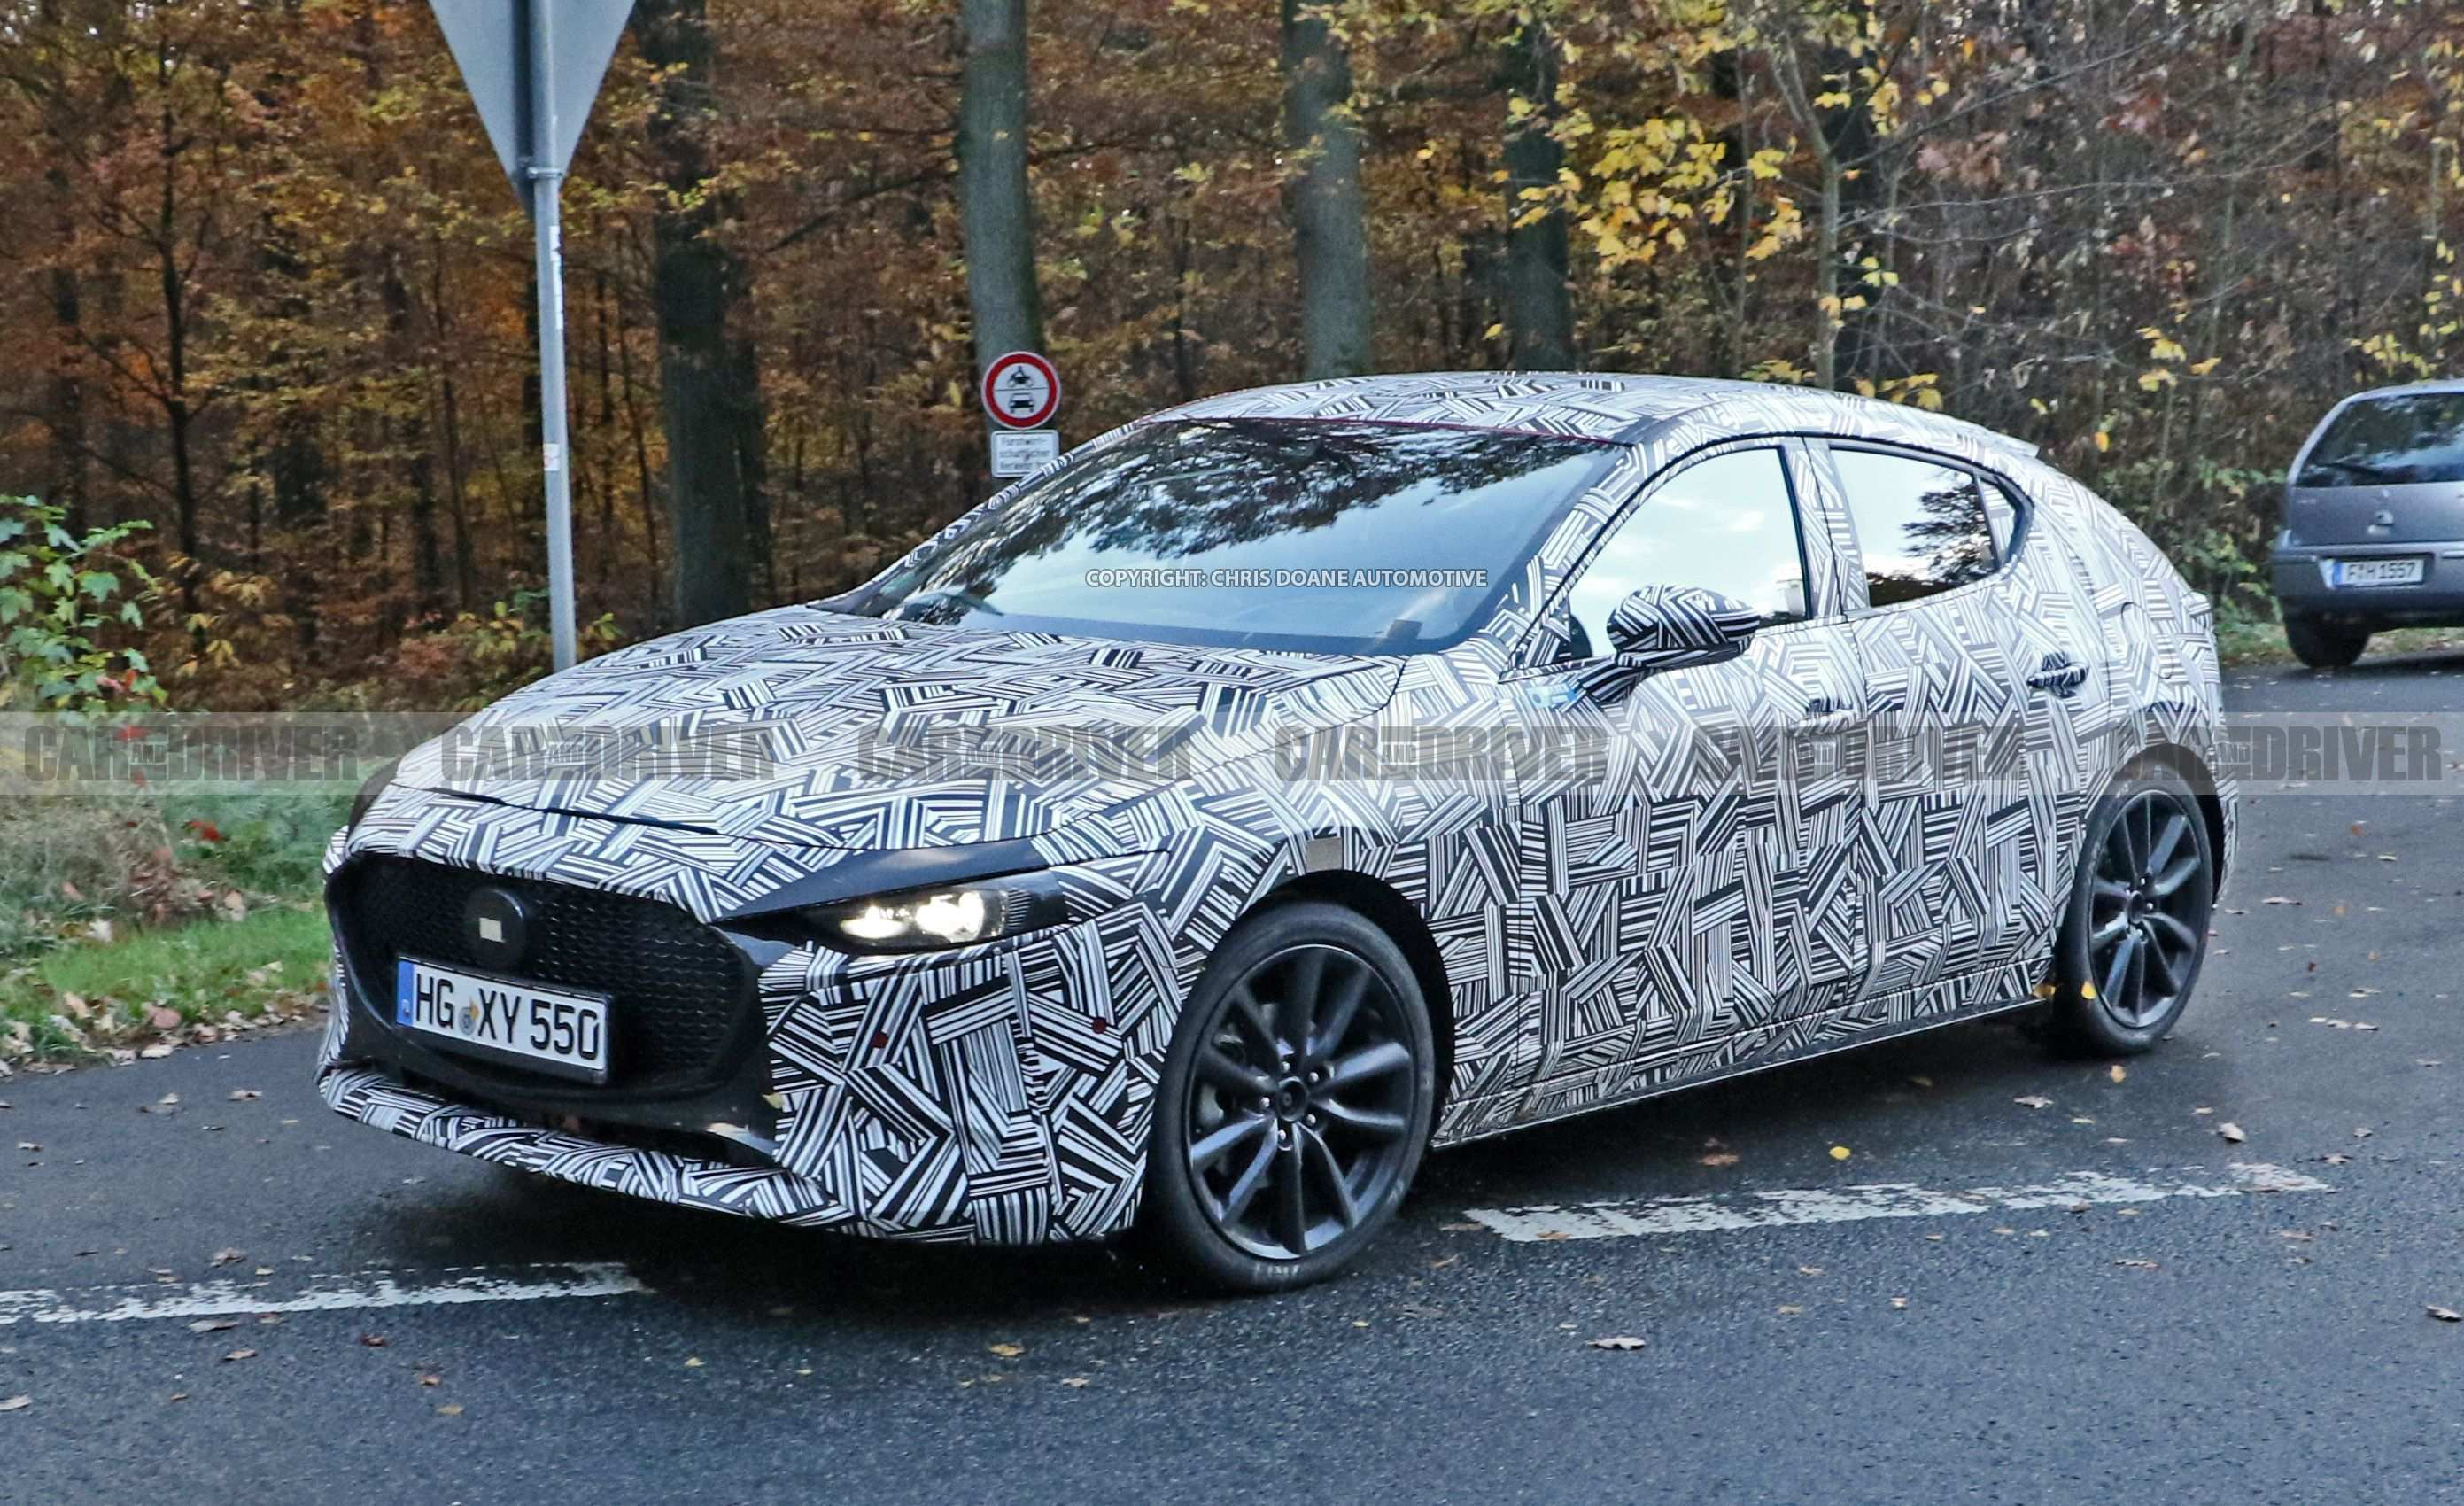 25 New 2020 Mazda 3 Spy Shots Speed Test by 2020 Mazda 3 Spy Shots